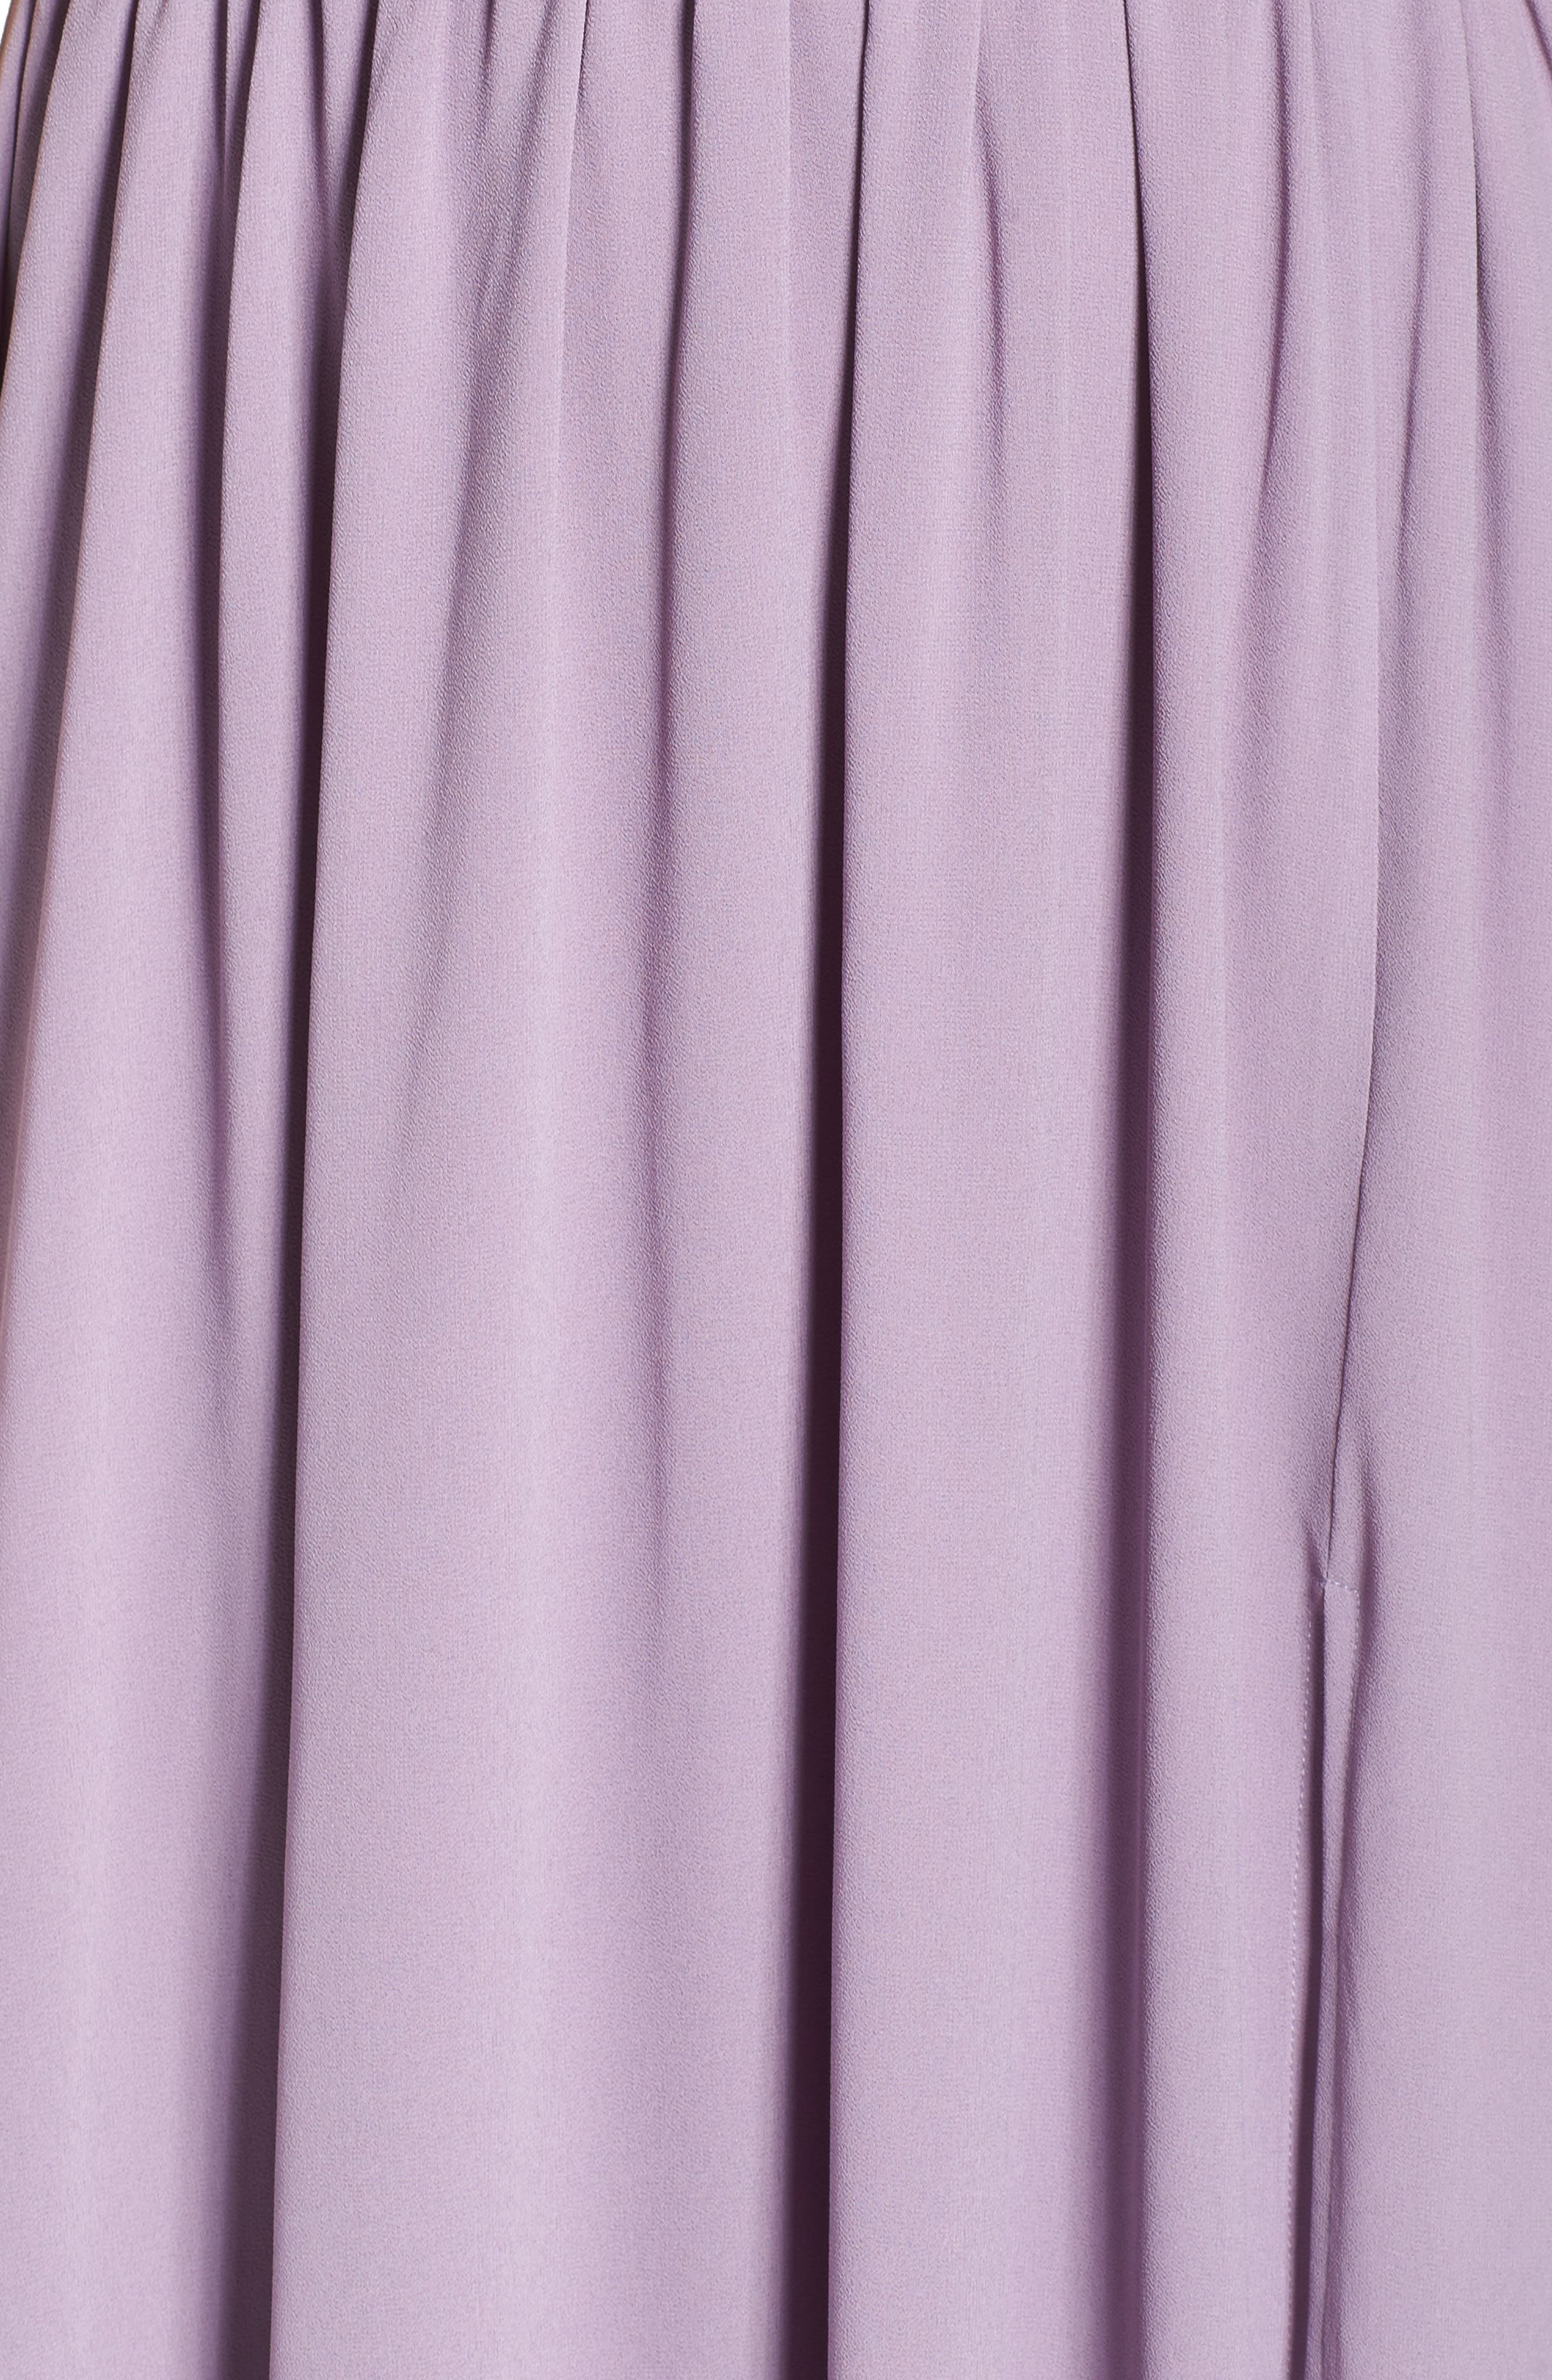 Plunging V-Neck Chiffon Gown,                             Alternate thumbnail 6, color,                             DUSTY VIOLET